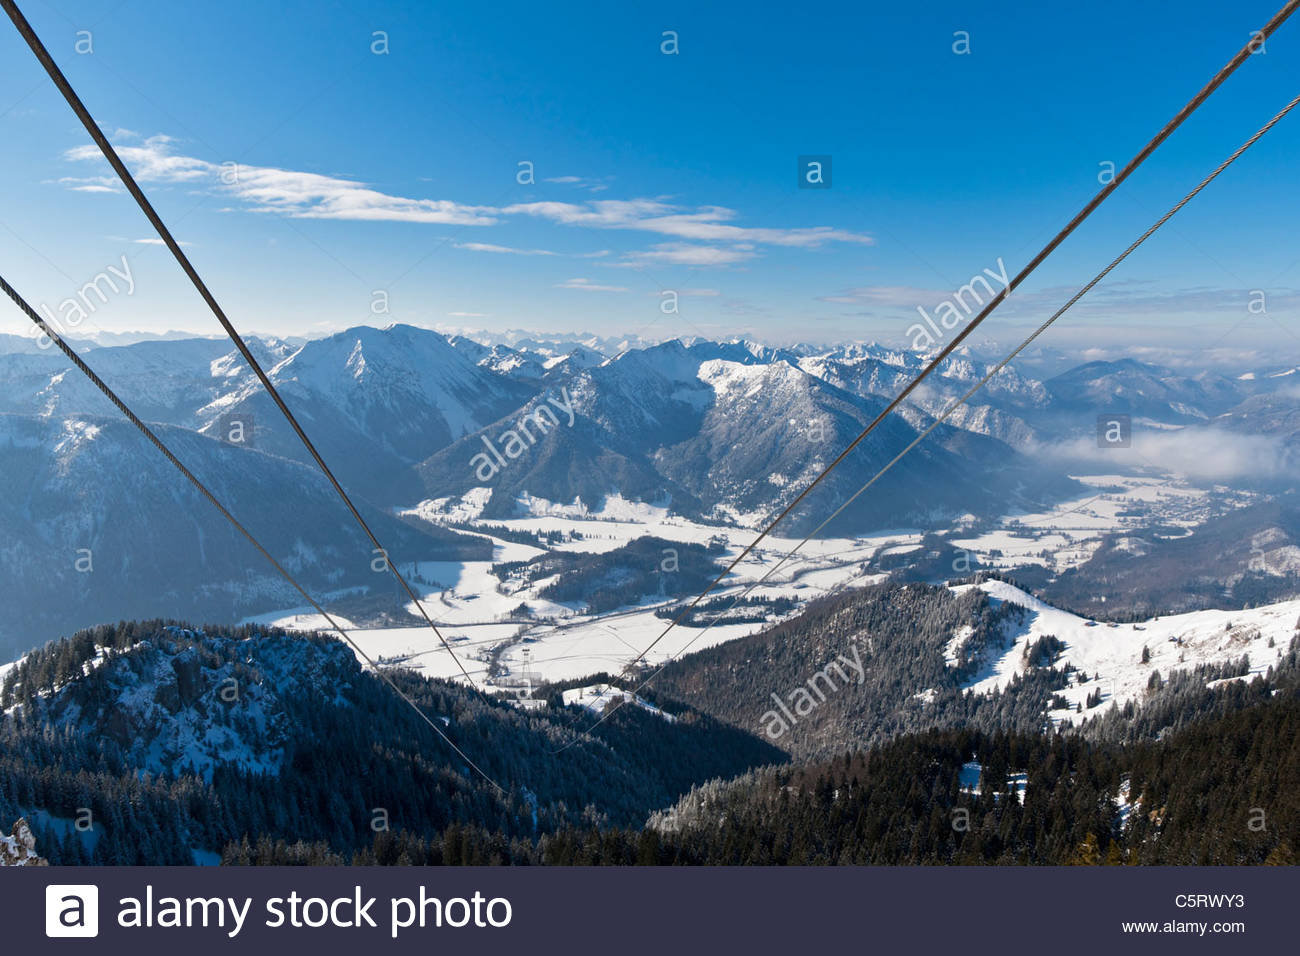 South Germany, Upper Bavaria, Bayrischzell, View of Wendelstein cable car with Mangfall mountains and Bavarian Prealps - Stock Image